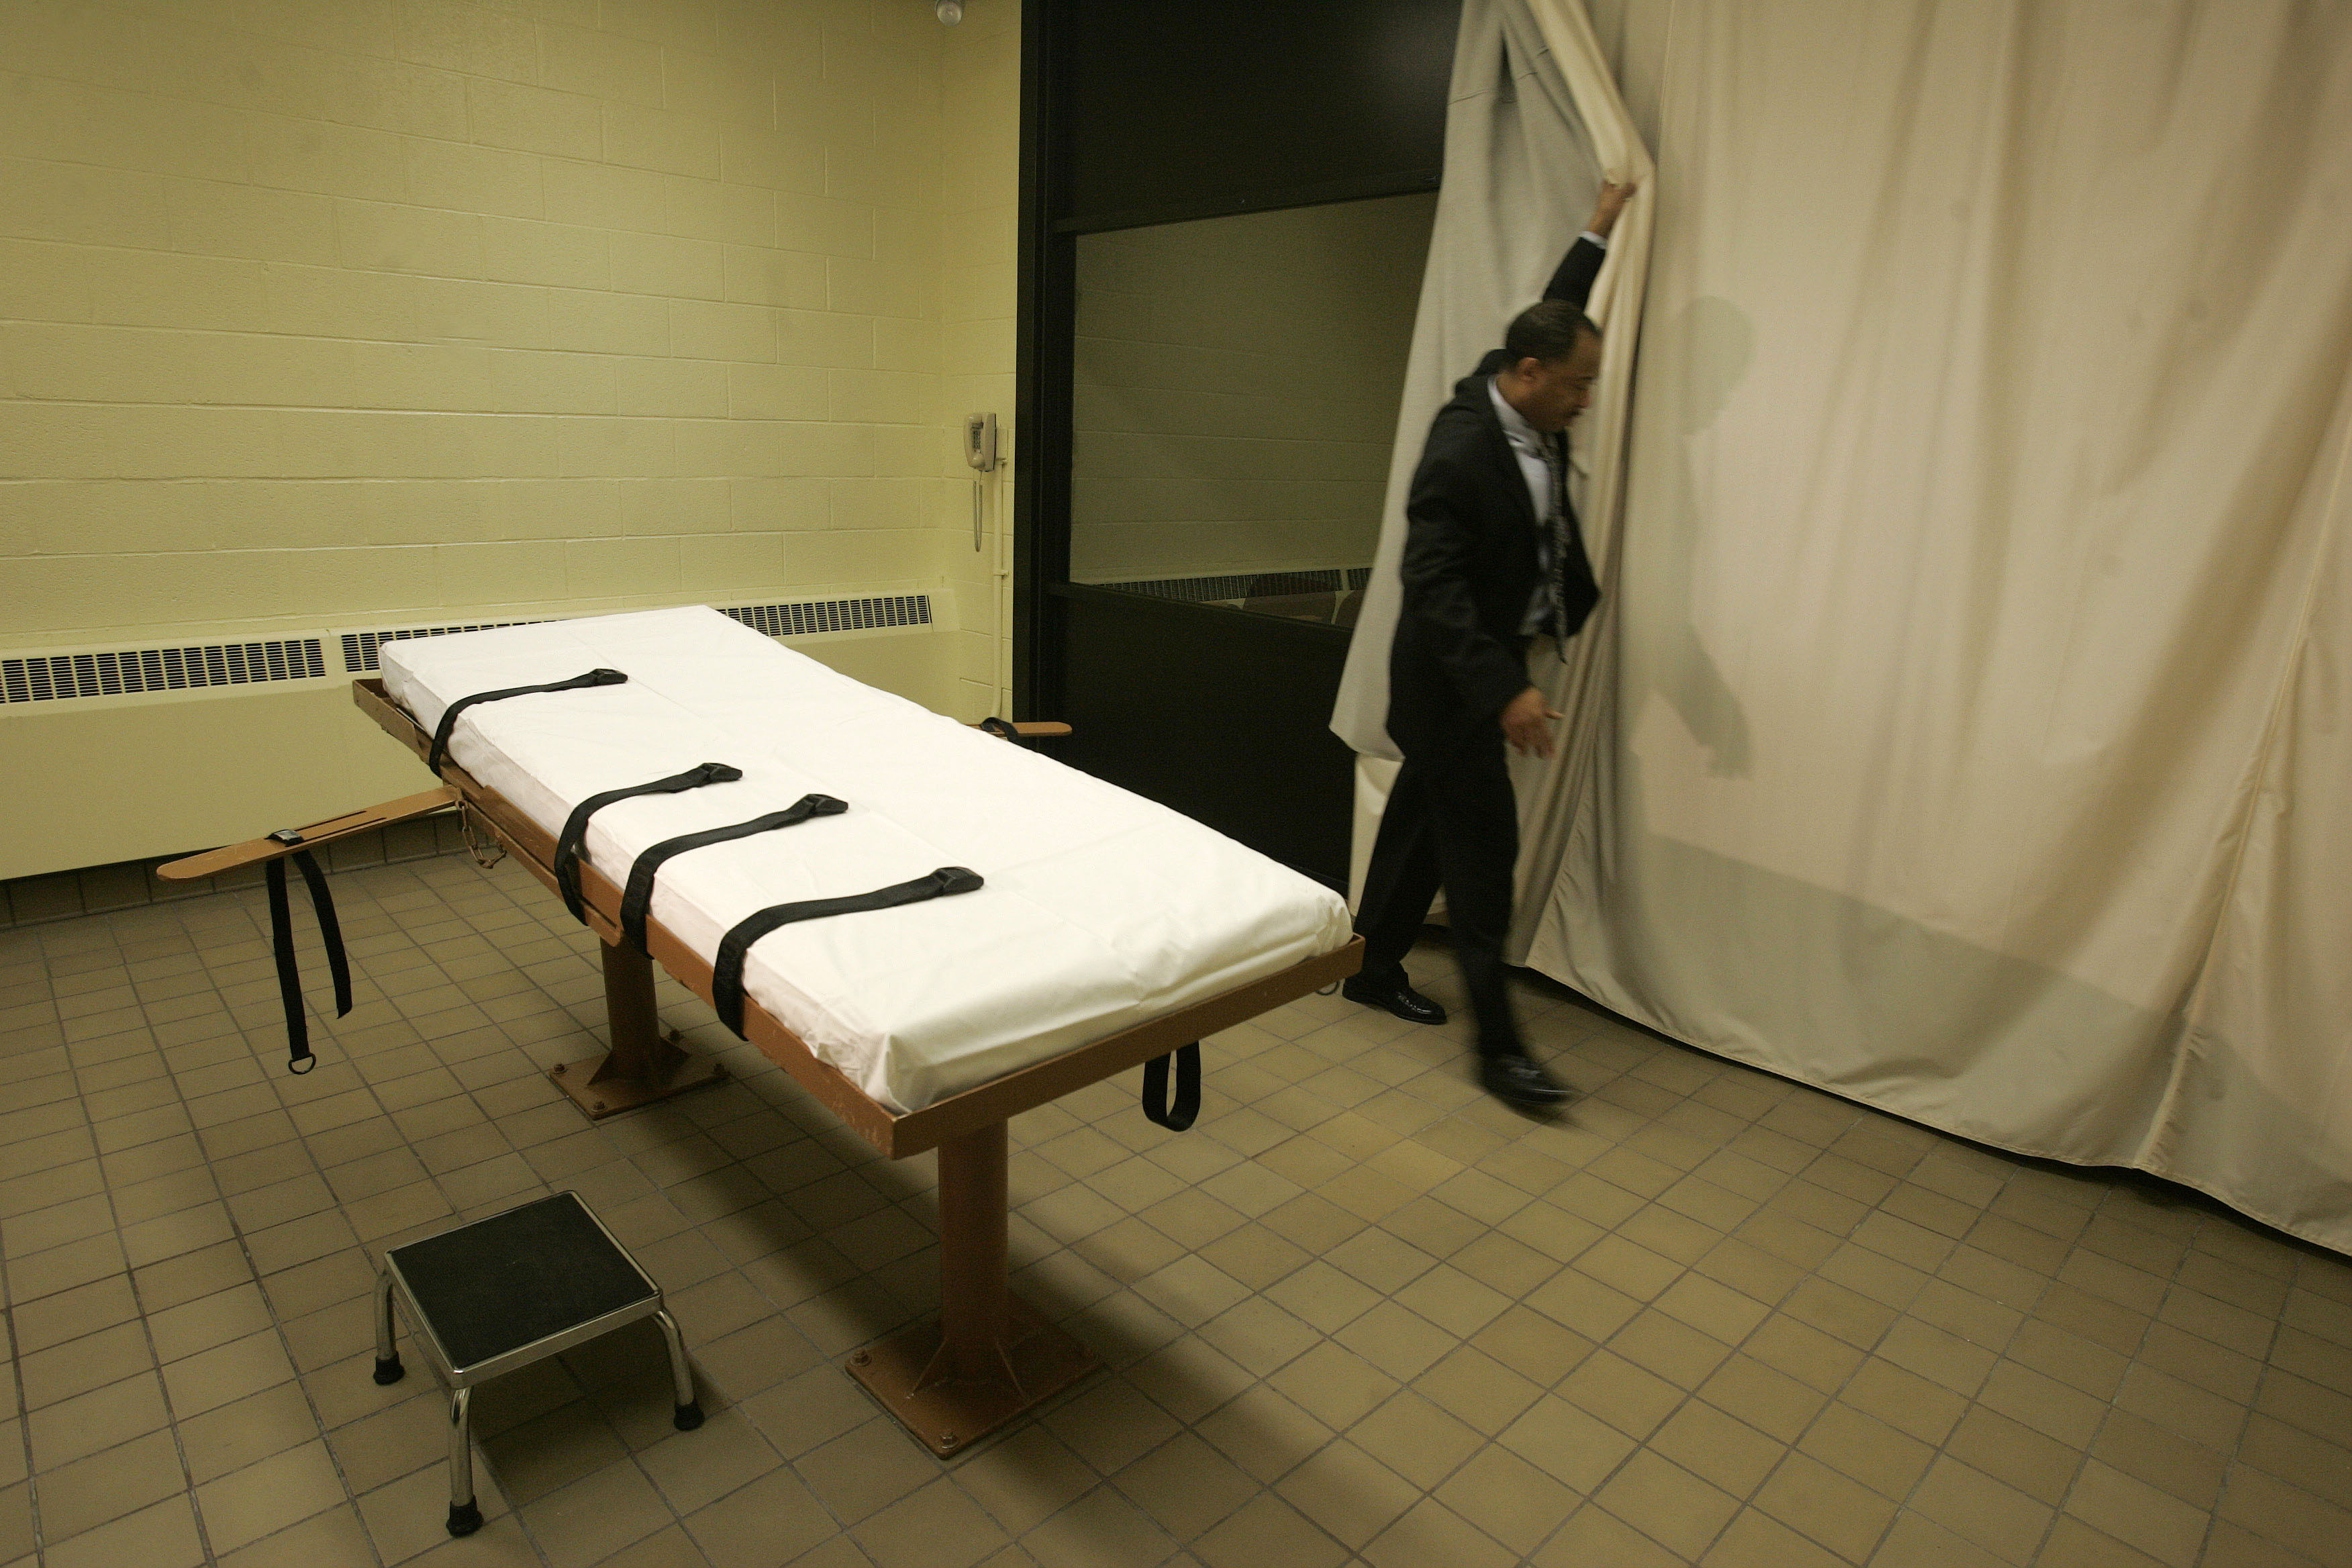 Ohio legislators are looking to shield the identity of drugmakers for lethal injections, which are performed in the execution chamber in the Southern Ohio Correctional Facility in Lucasville, Ohio.